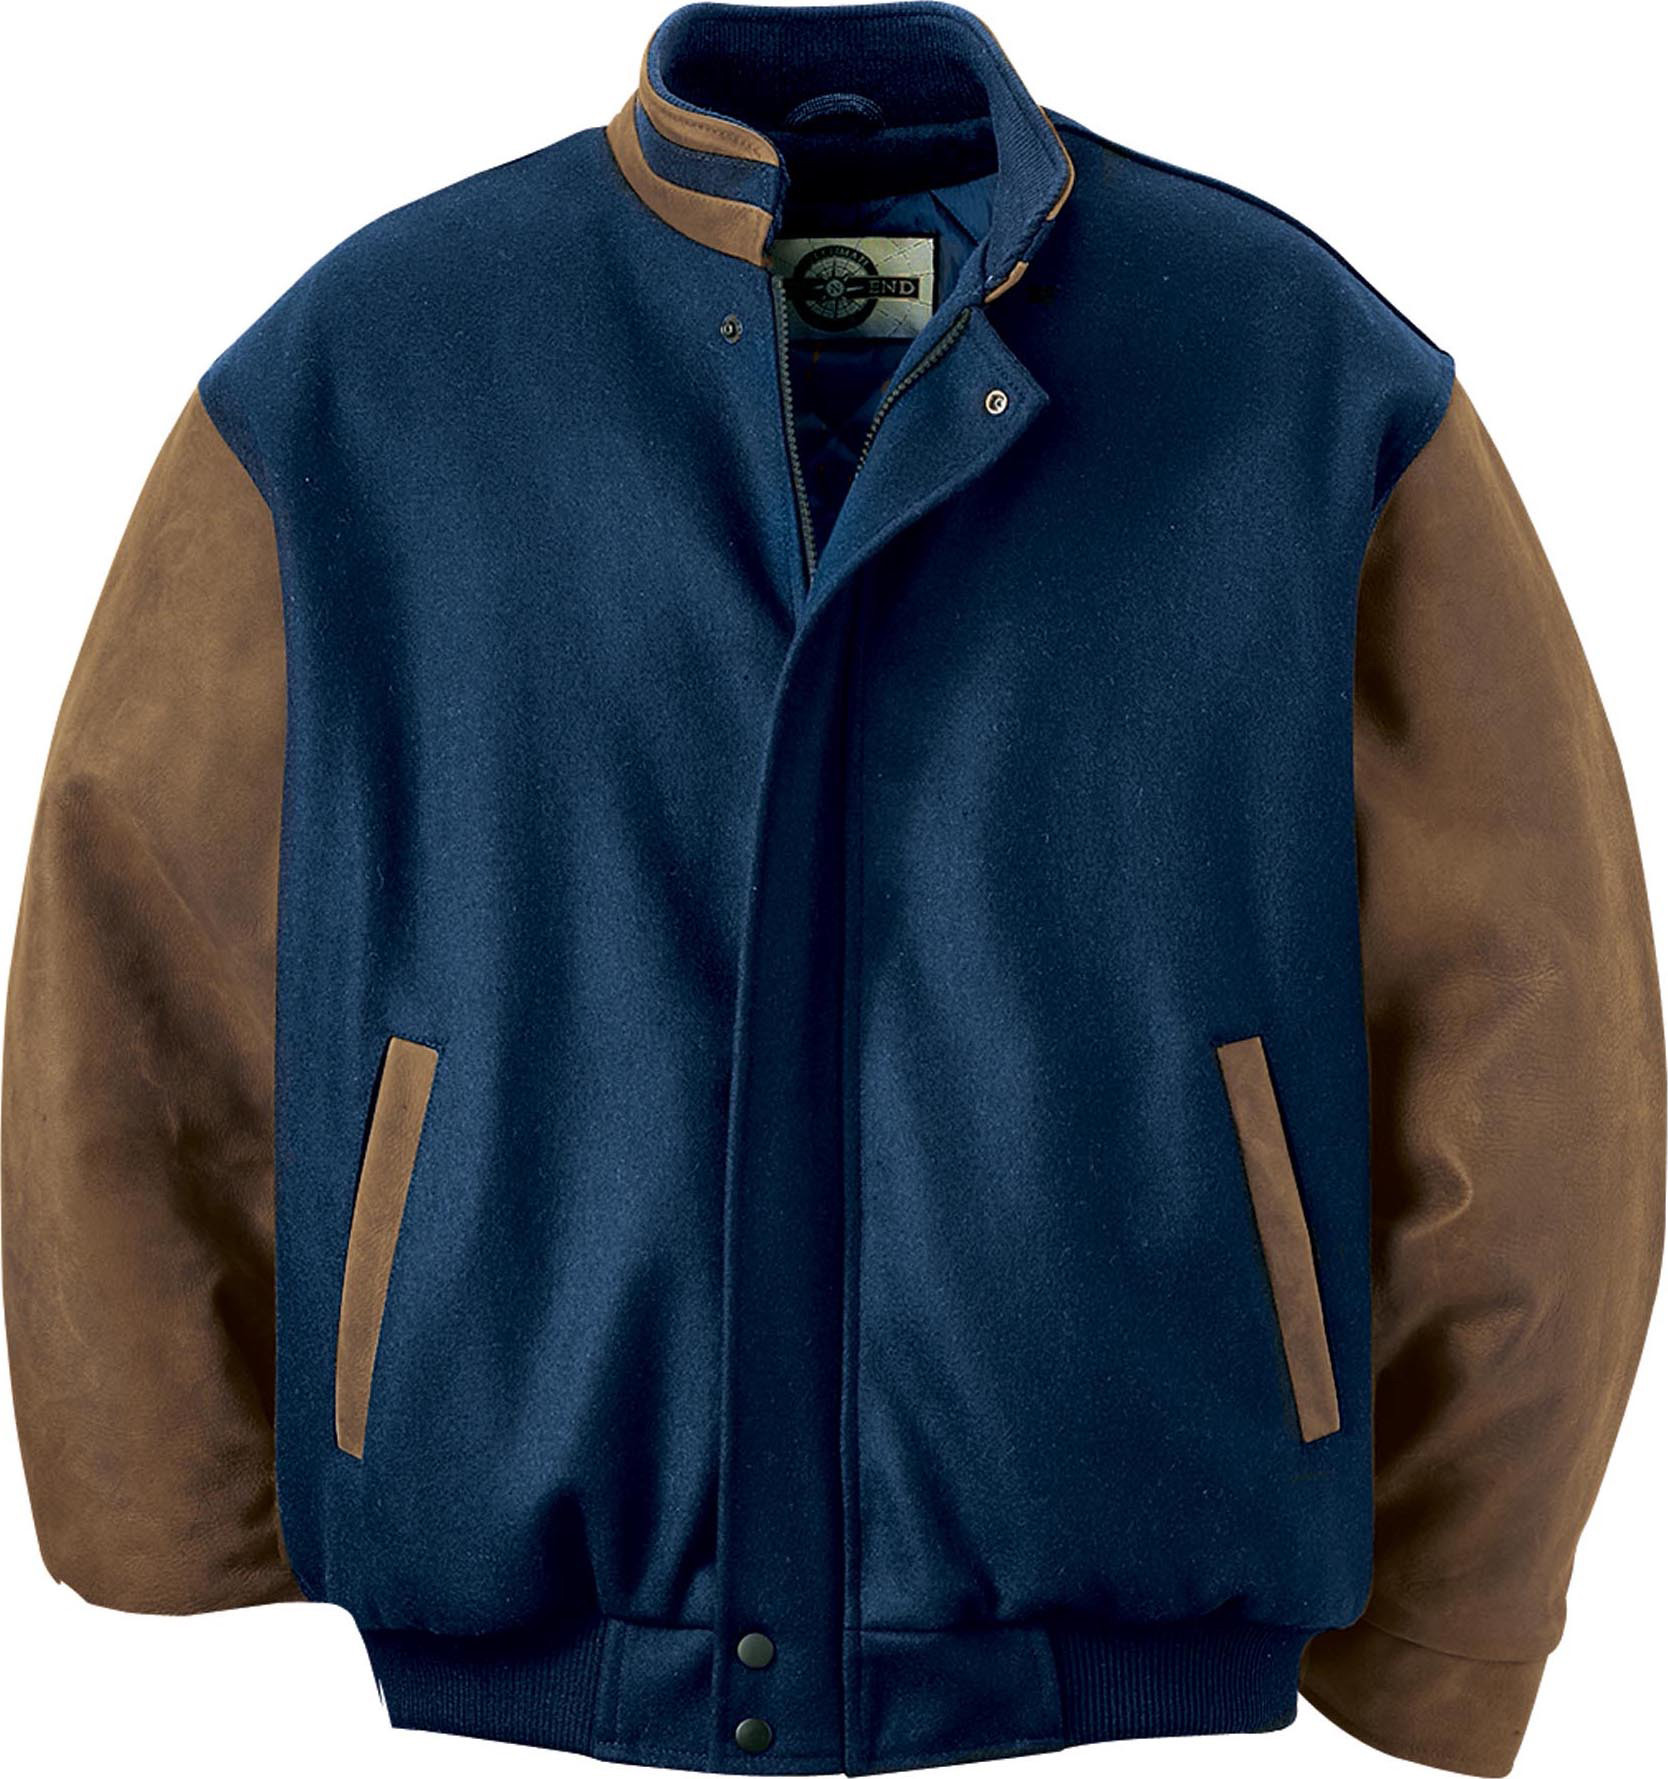 Ash City Classic 88075 - Men's Melton Nubuck Jacket ...